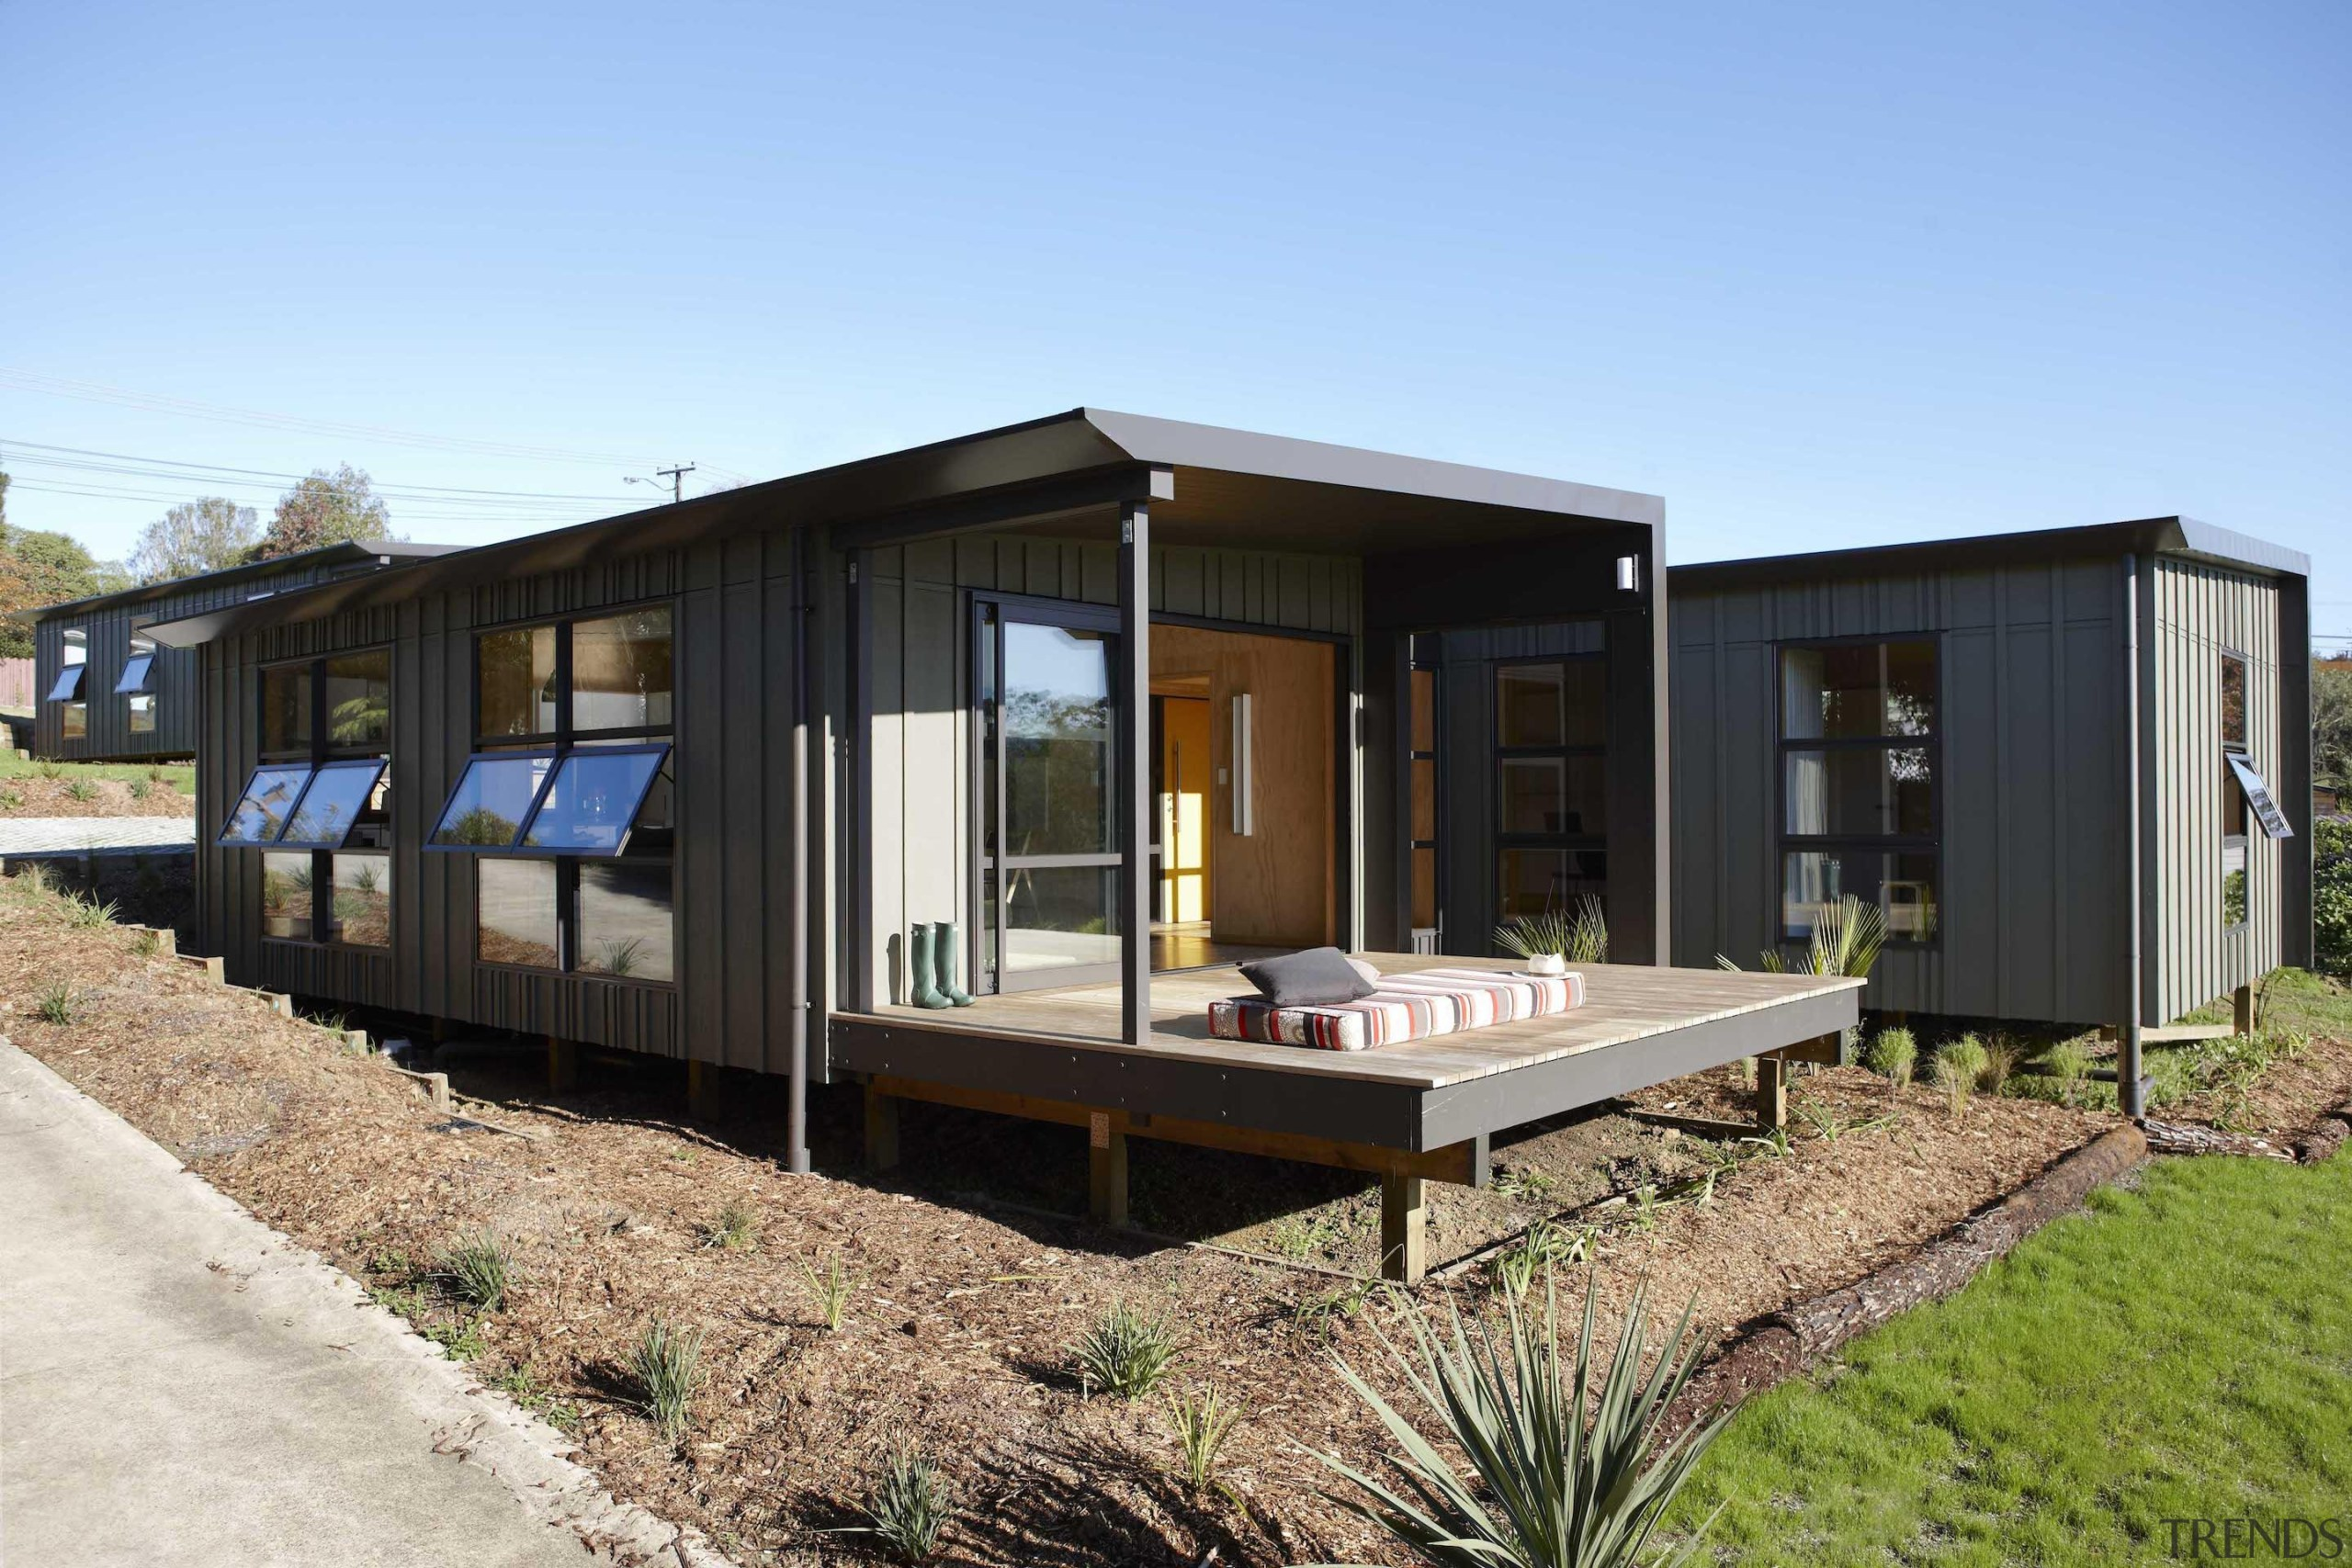 Waitakere Ranges - Studio 19 VisionWest Community Housing architecture, home, house, property, real estate, teal, black